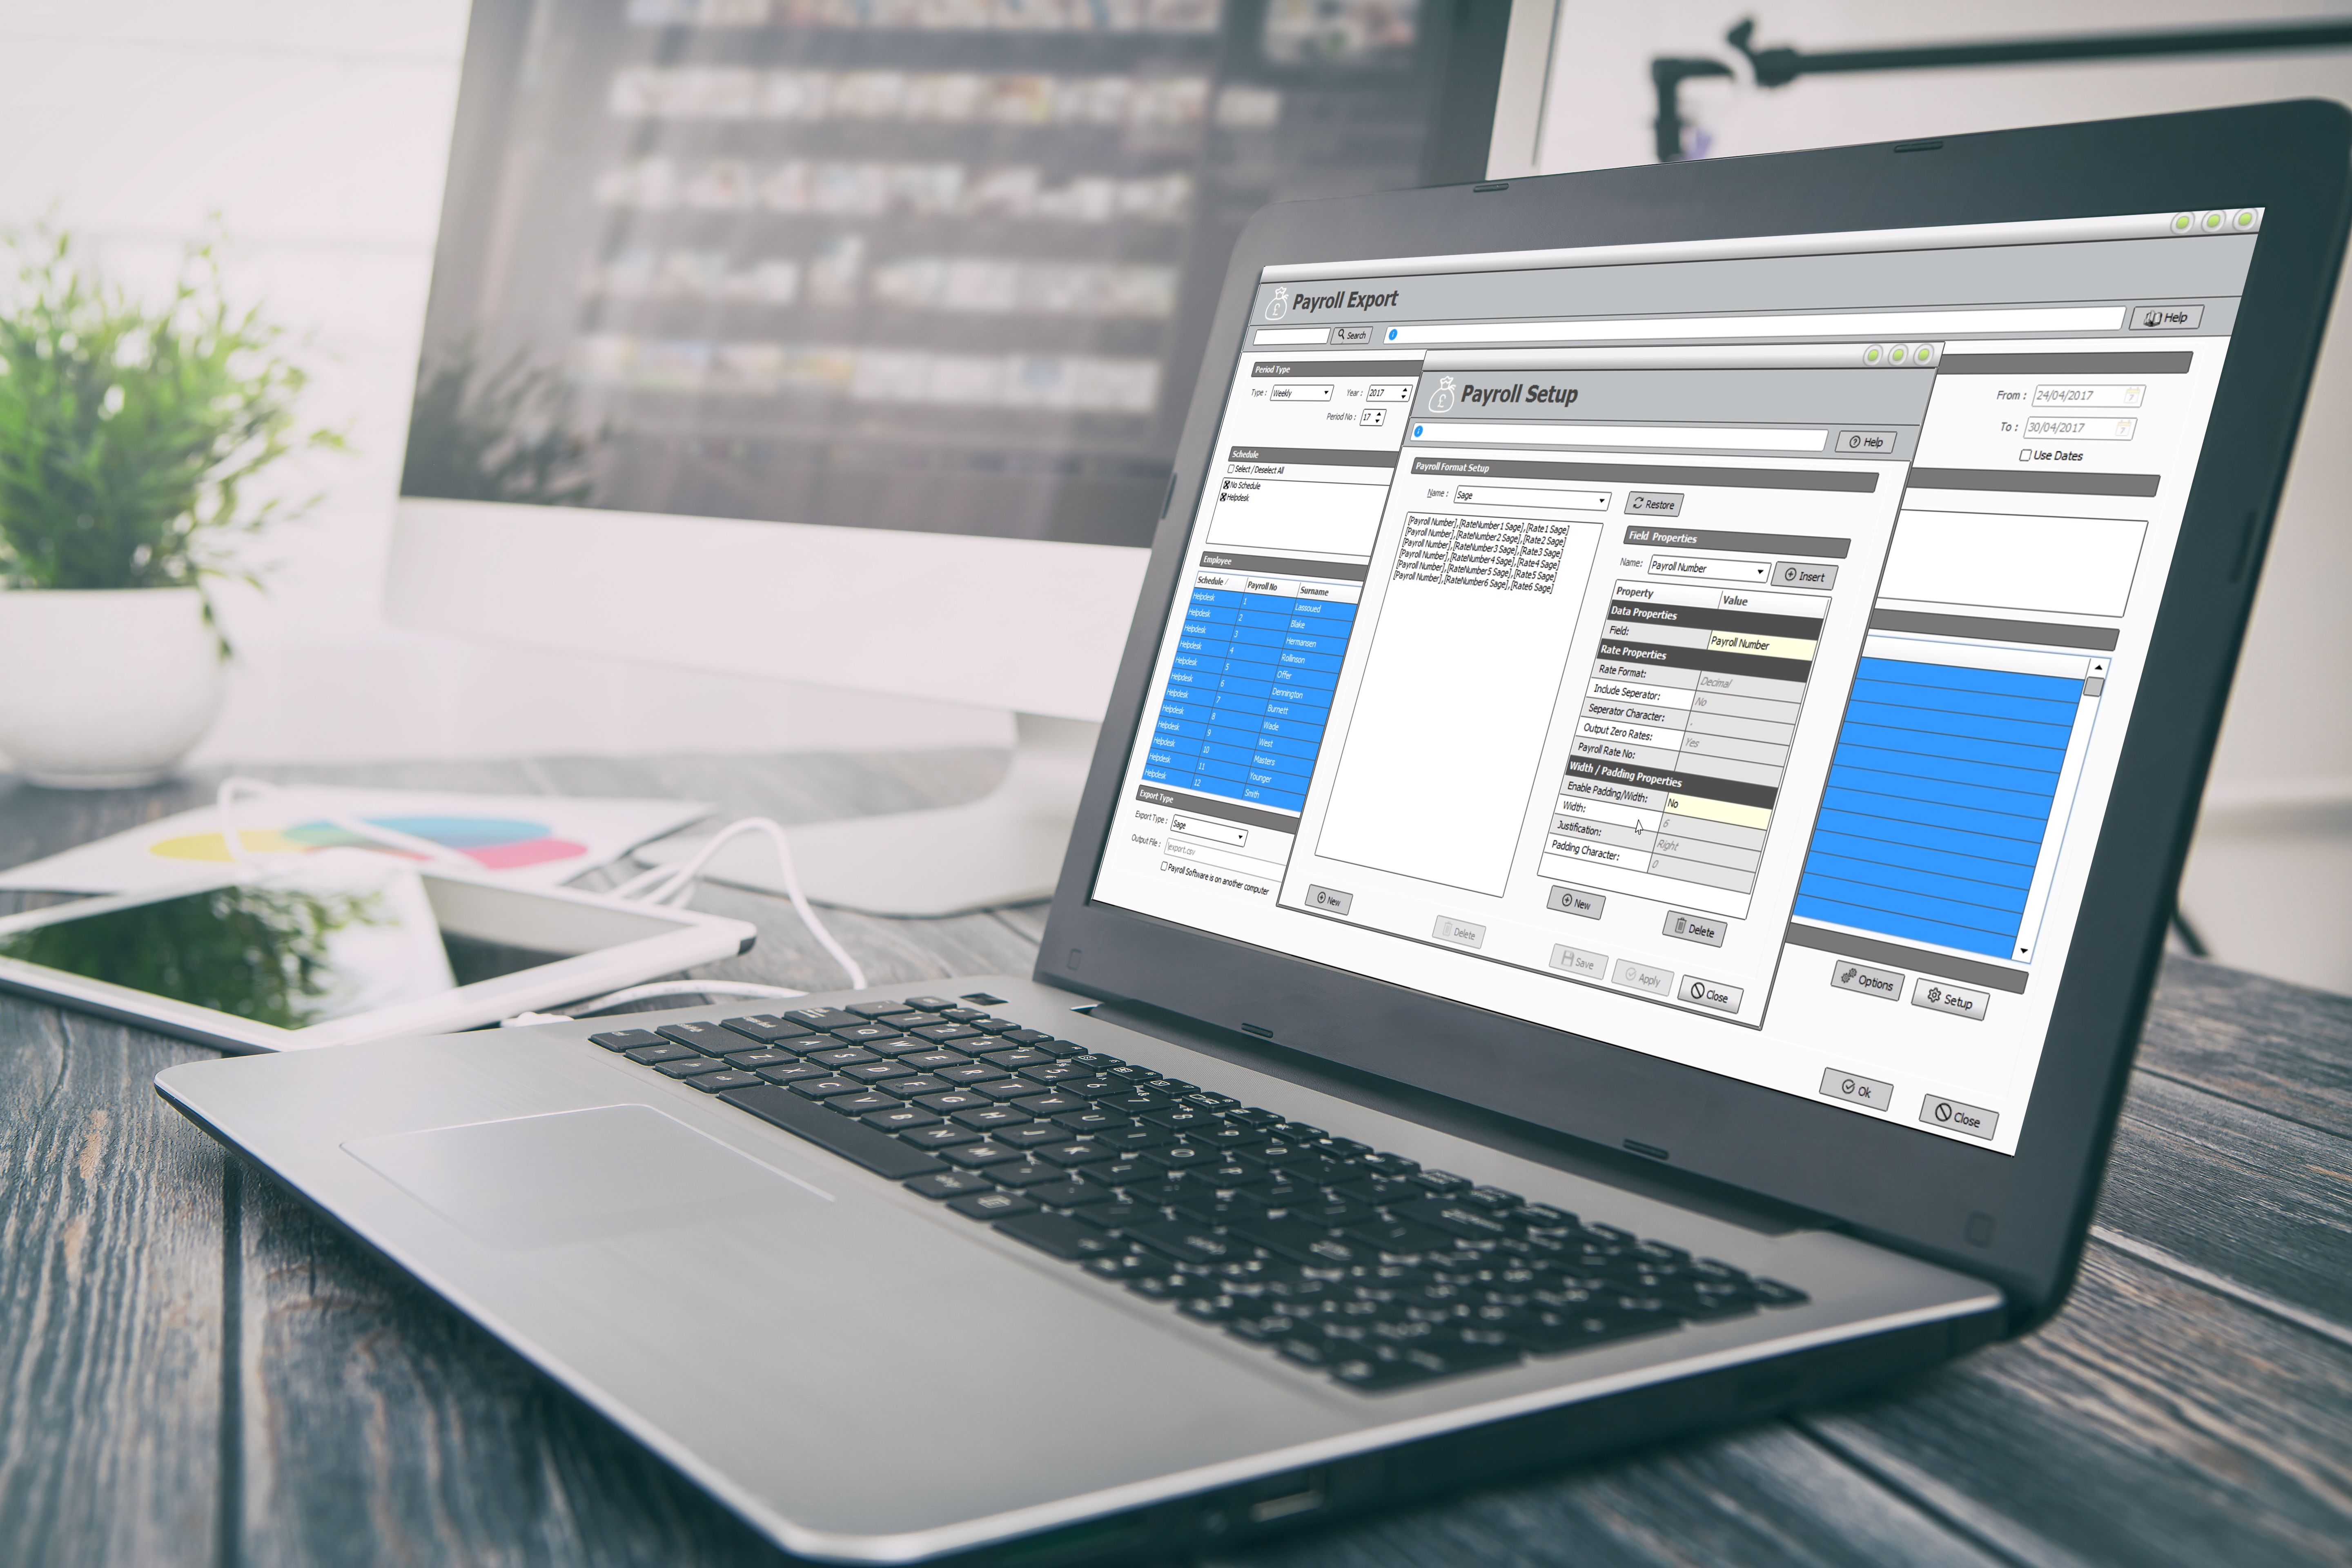 clocking systems compatible with sage payroll